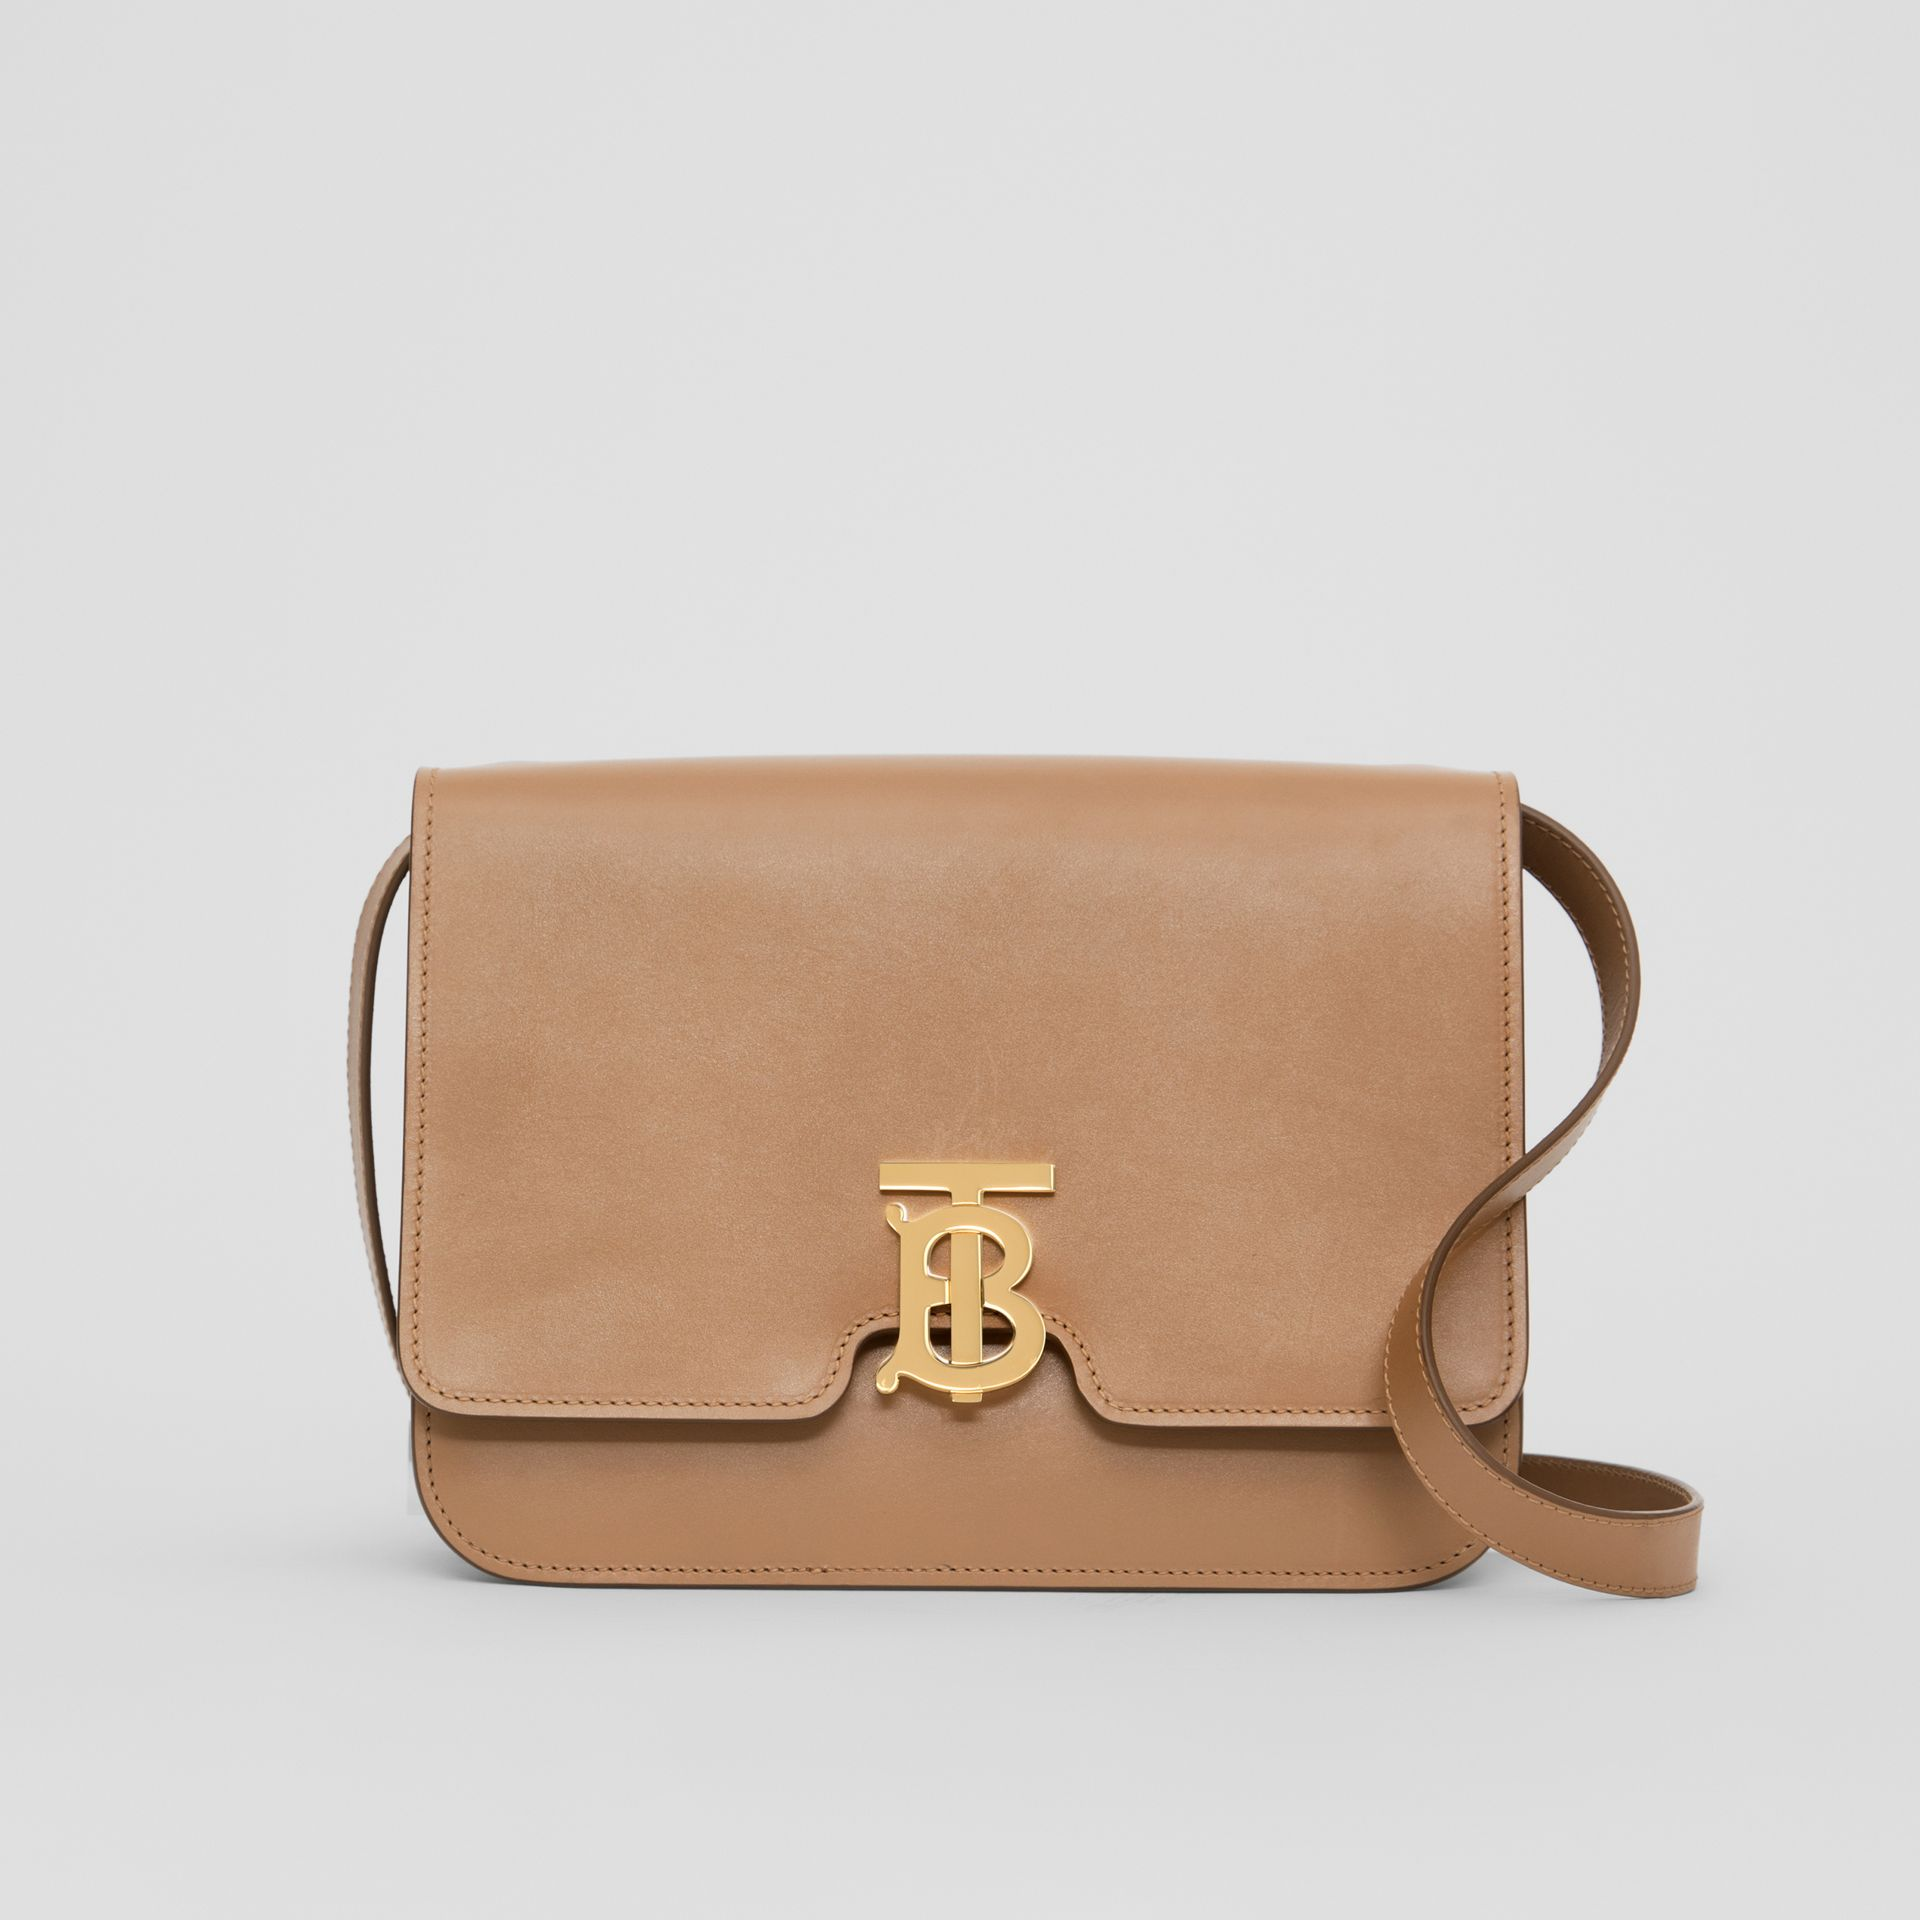 Medium Leather TB Bag in Light Camel - Women | Burberry - gallery image 0